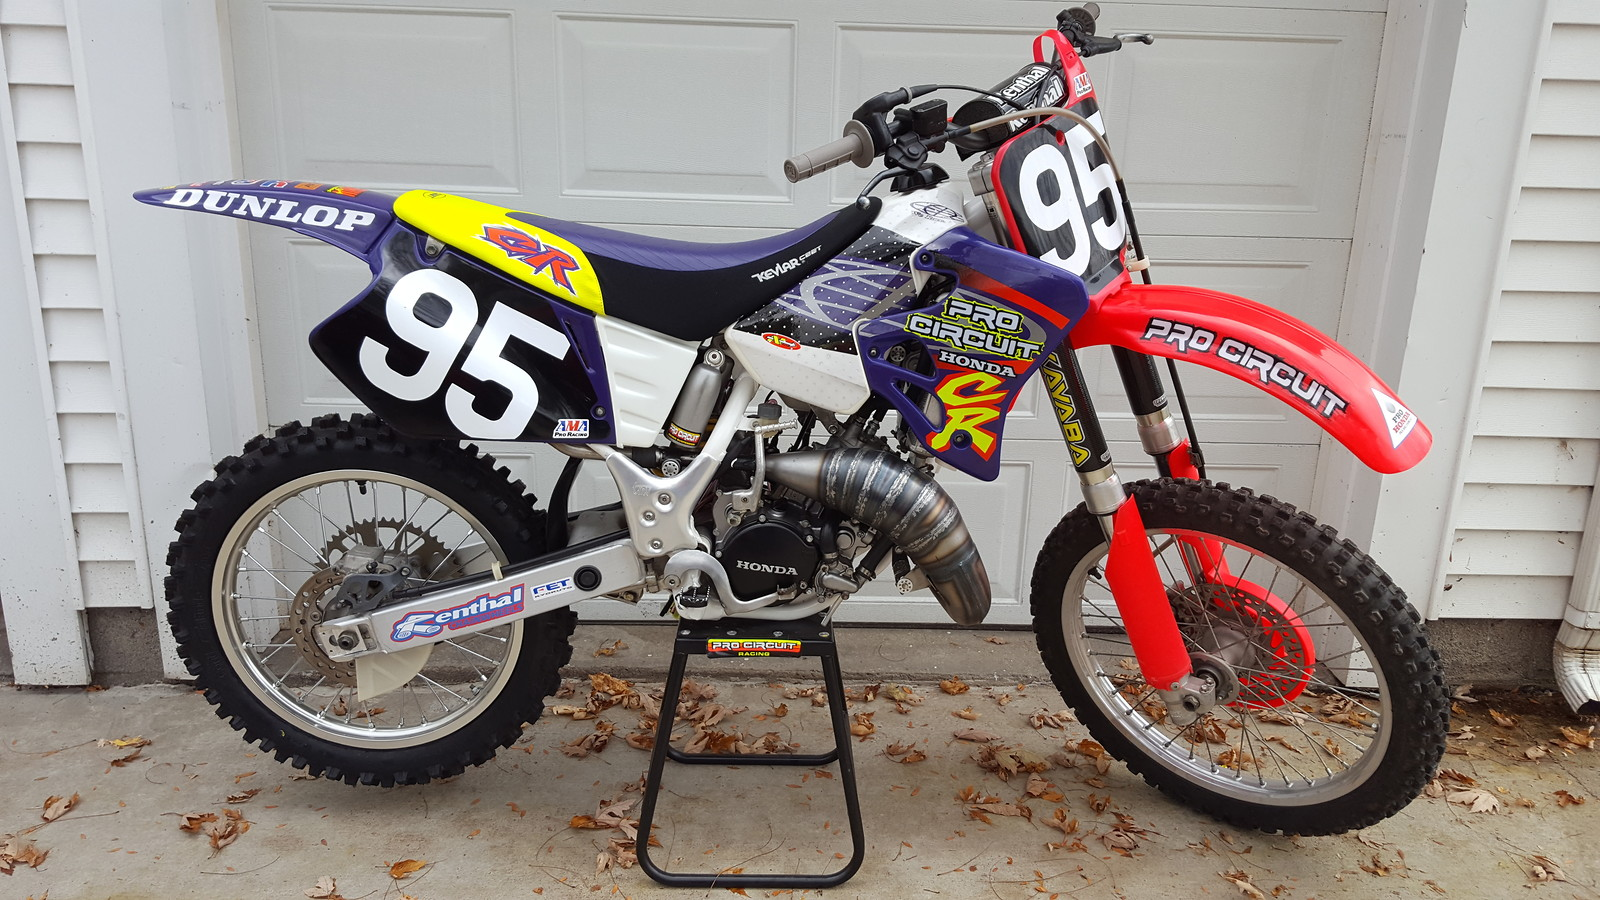 I wanted to build a bike that looked like it came straight out of '95. I didnt want to use any modern parts on it whatsoever. As my buddy Dillon Reimann put it, basically a bike that looks like a Pro Circuit sponsored privateer bike.